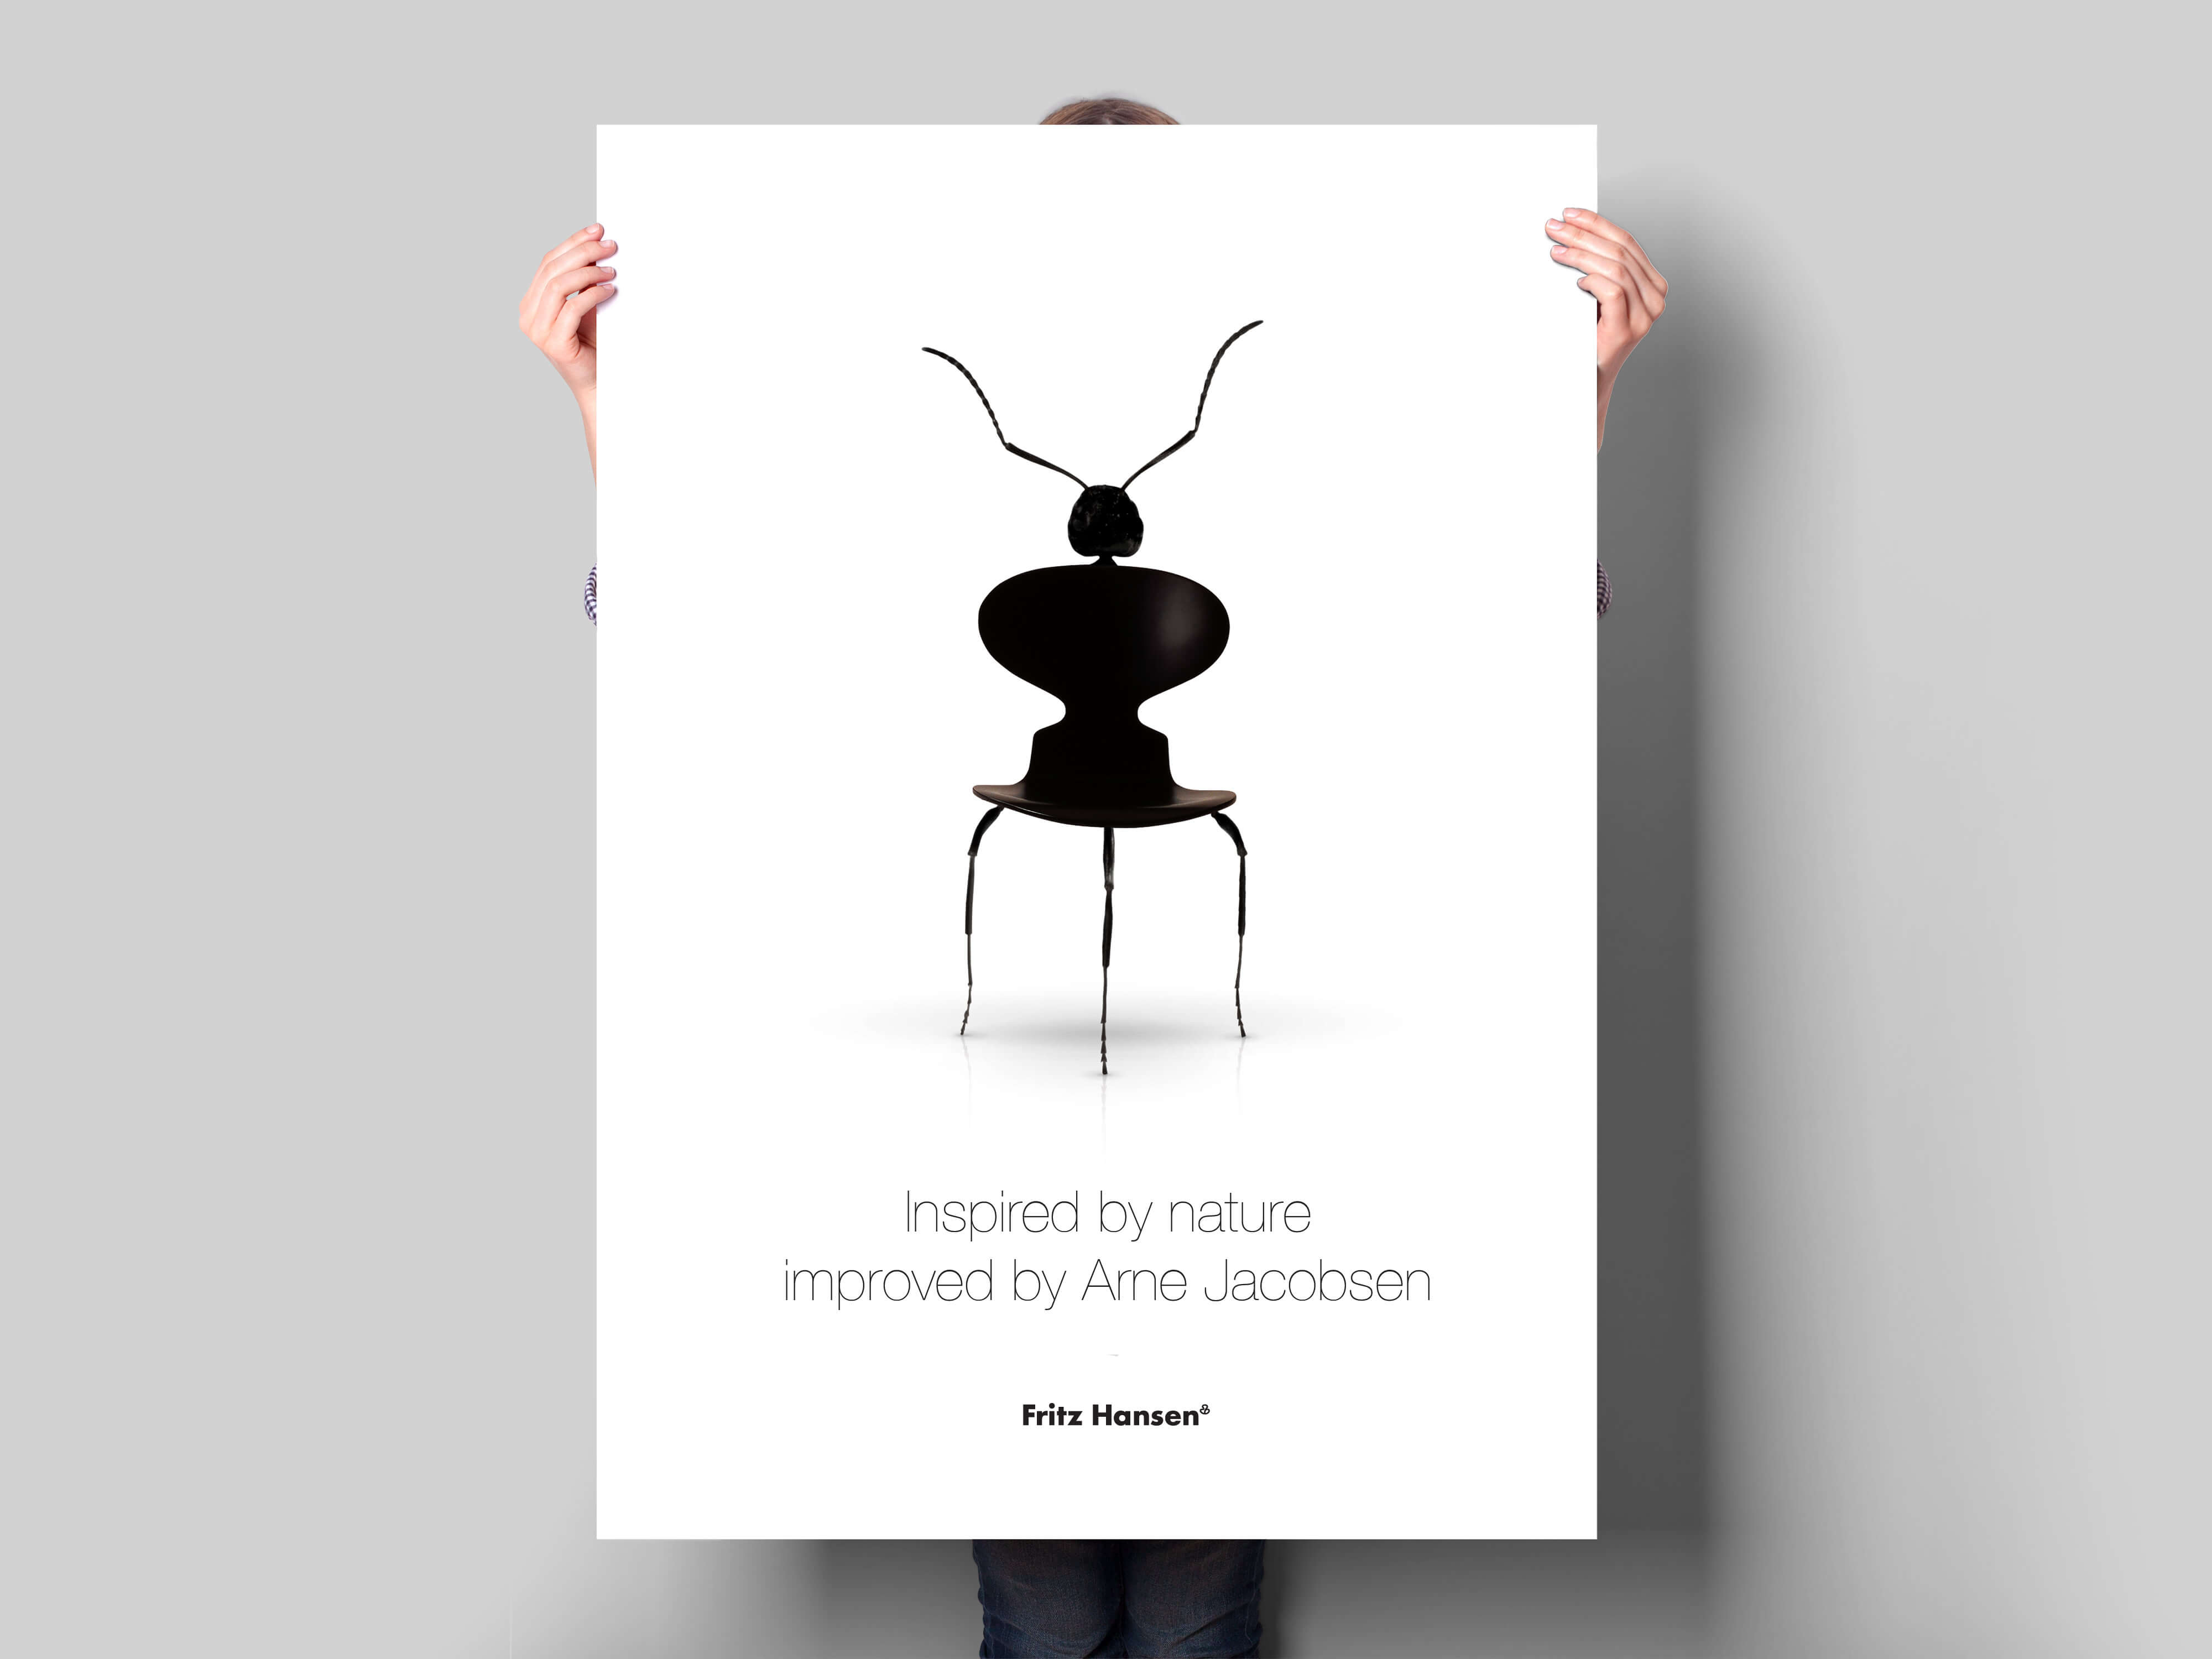 03_Poster_Inspired_ANT_01